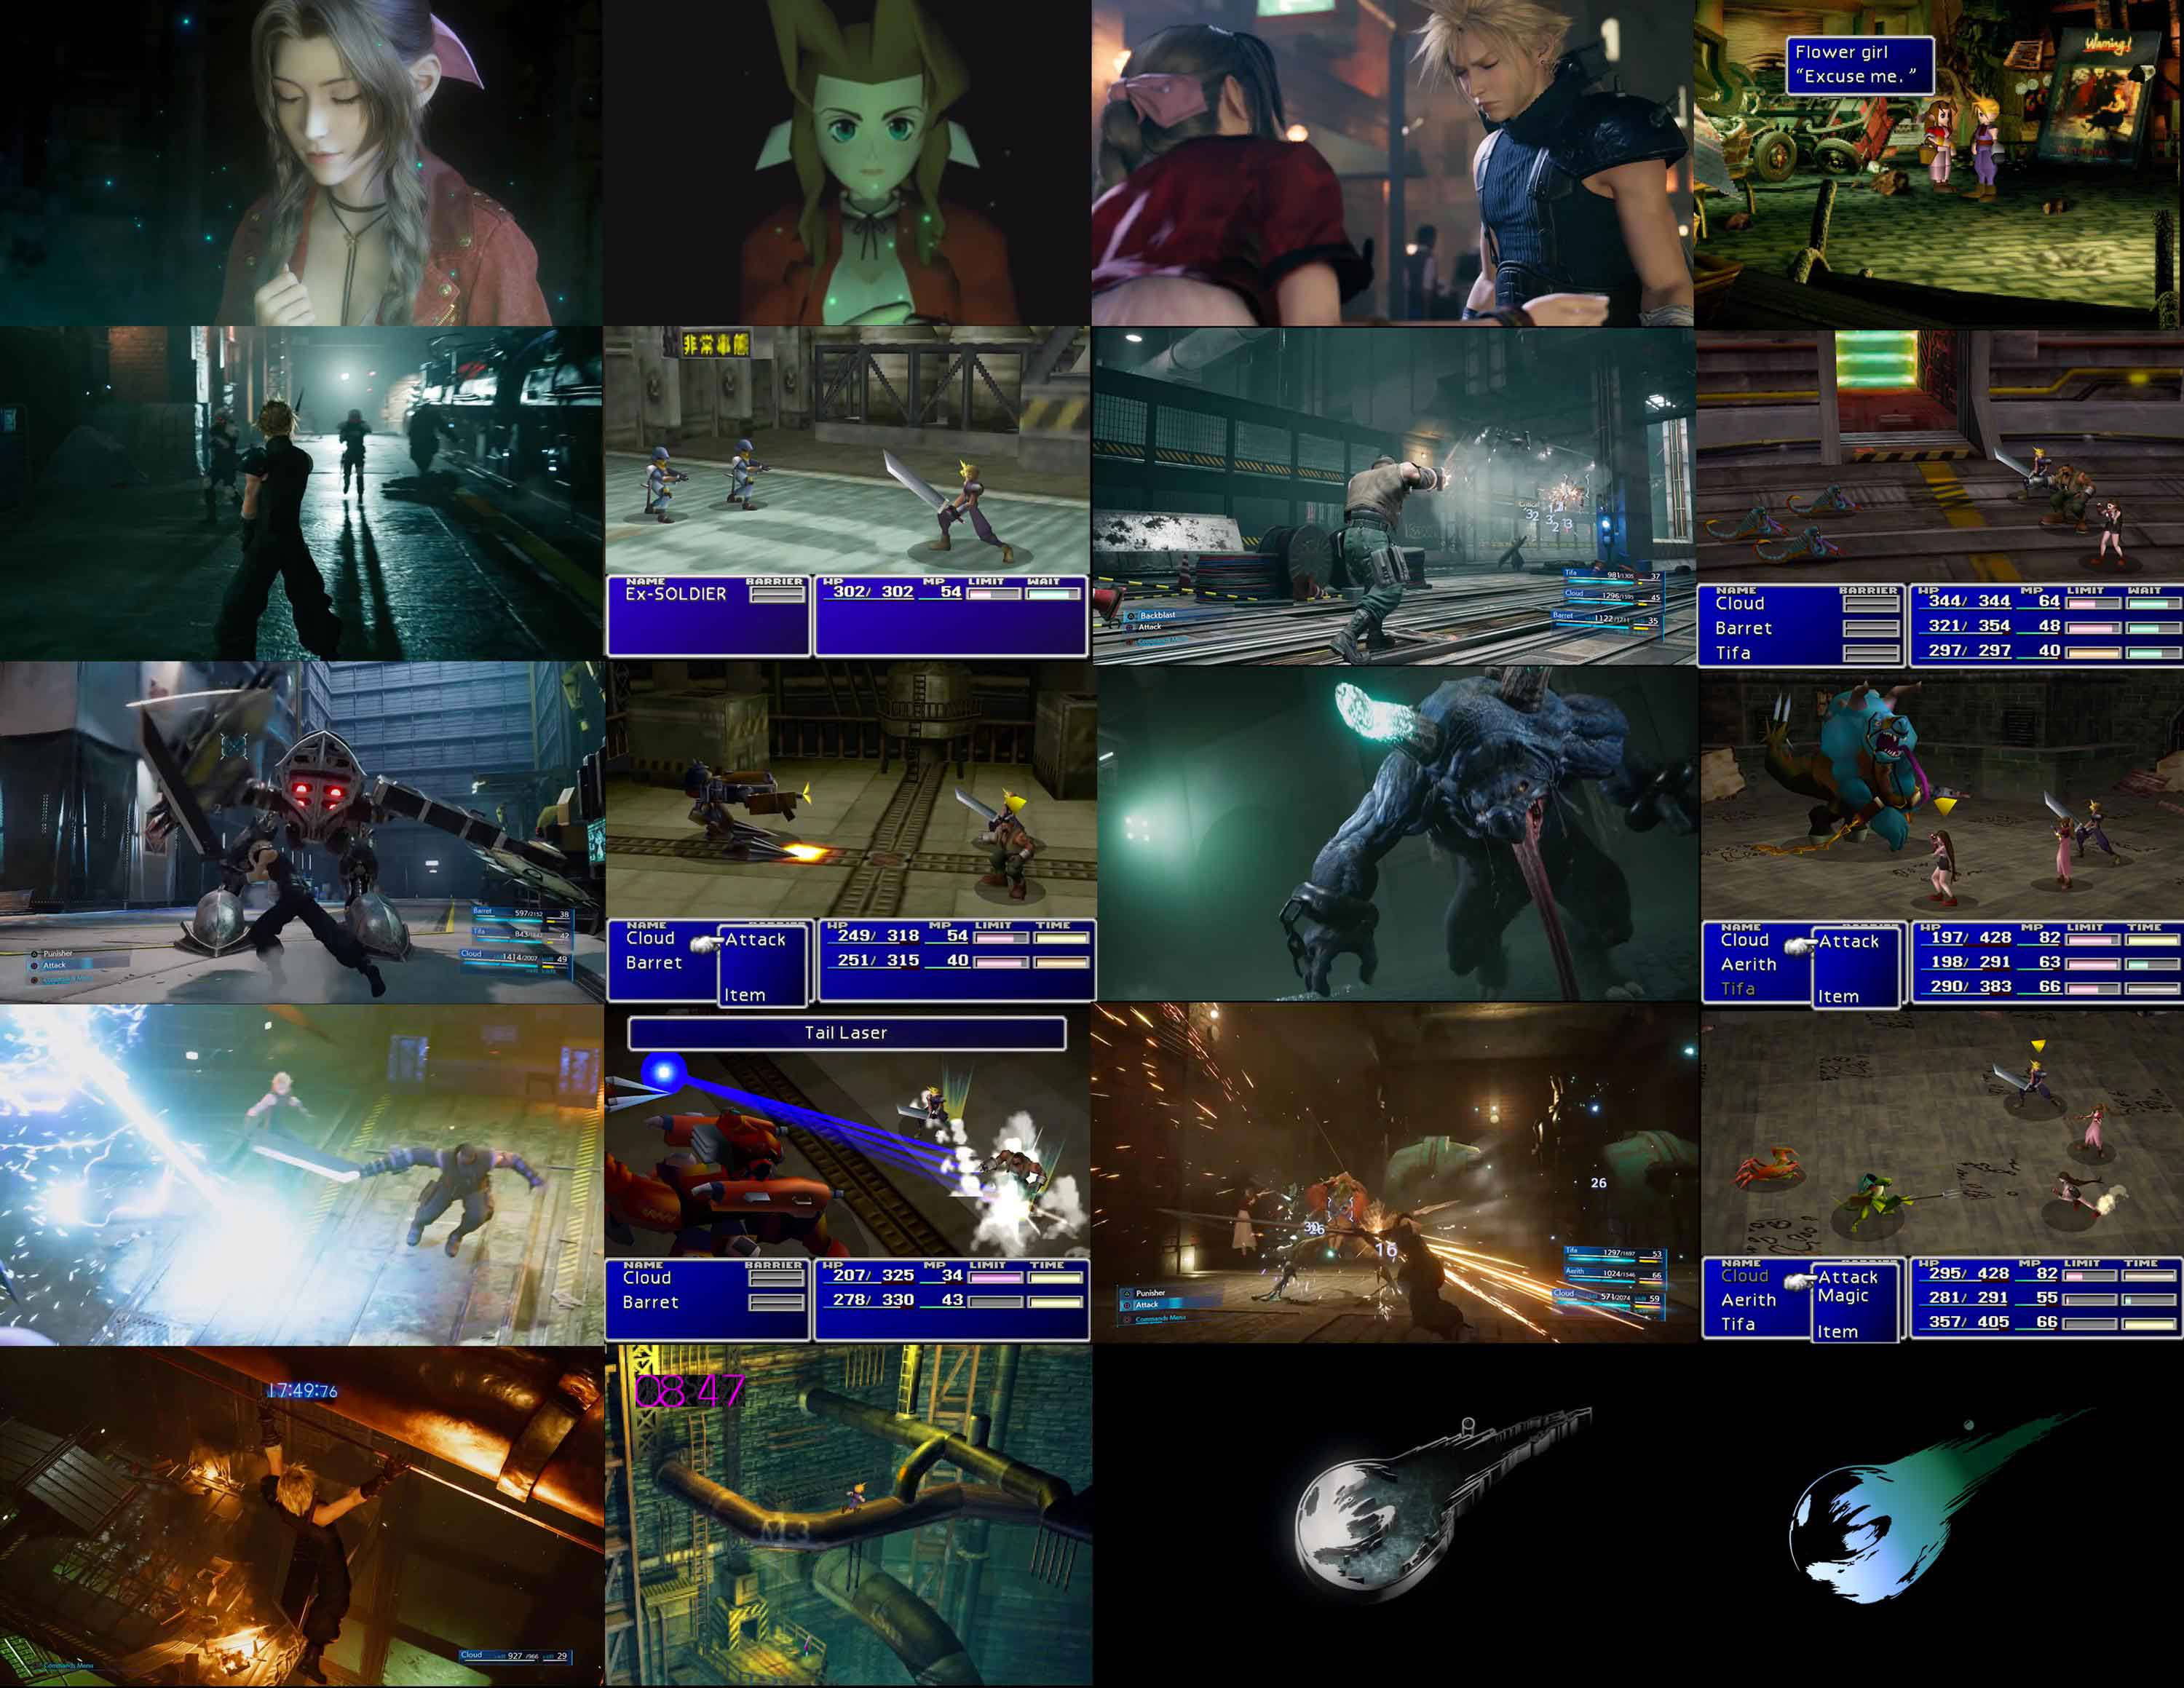 final-fantasy-7-remake-comparatif-image-version-ps1-ps4